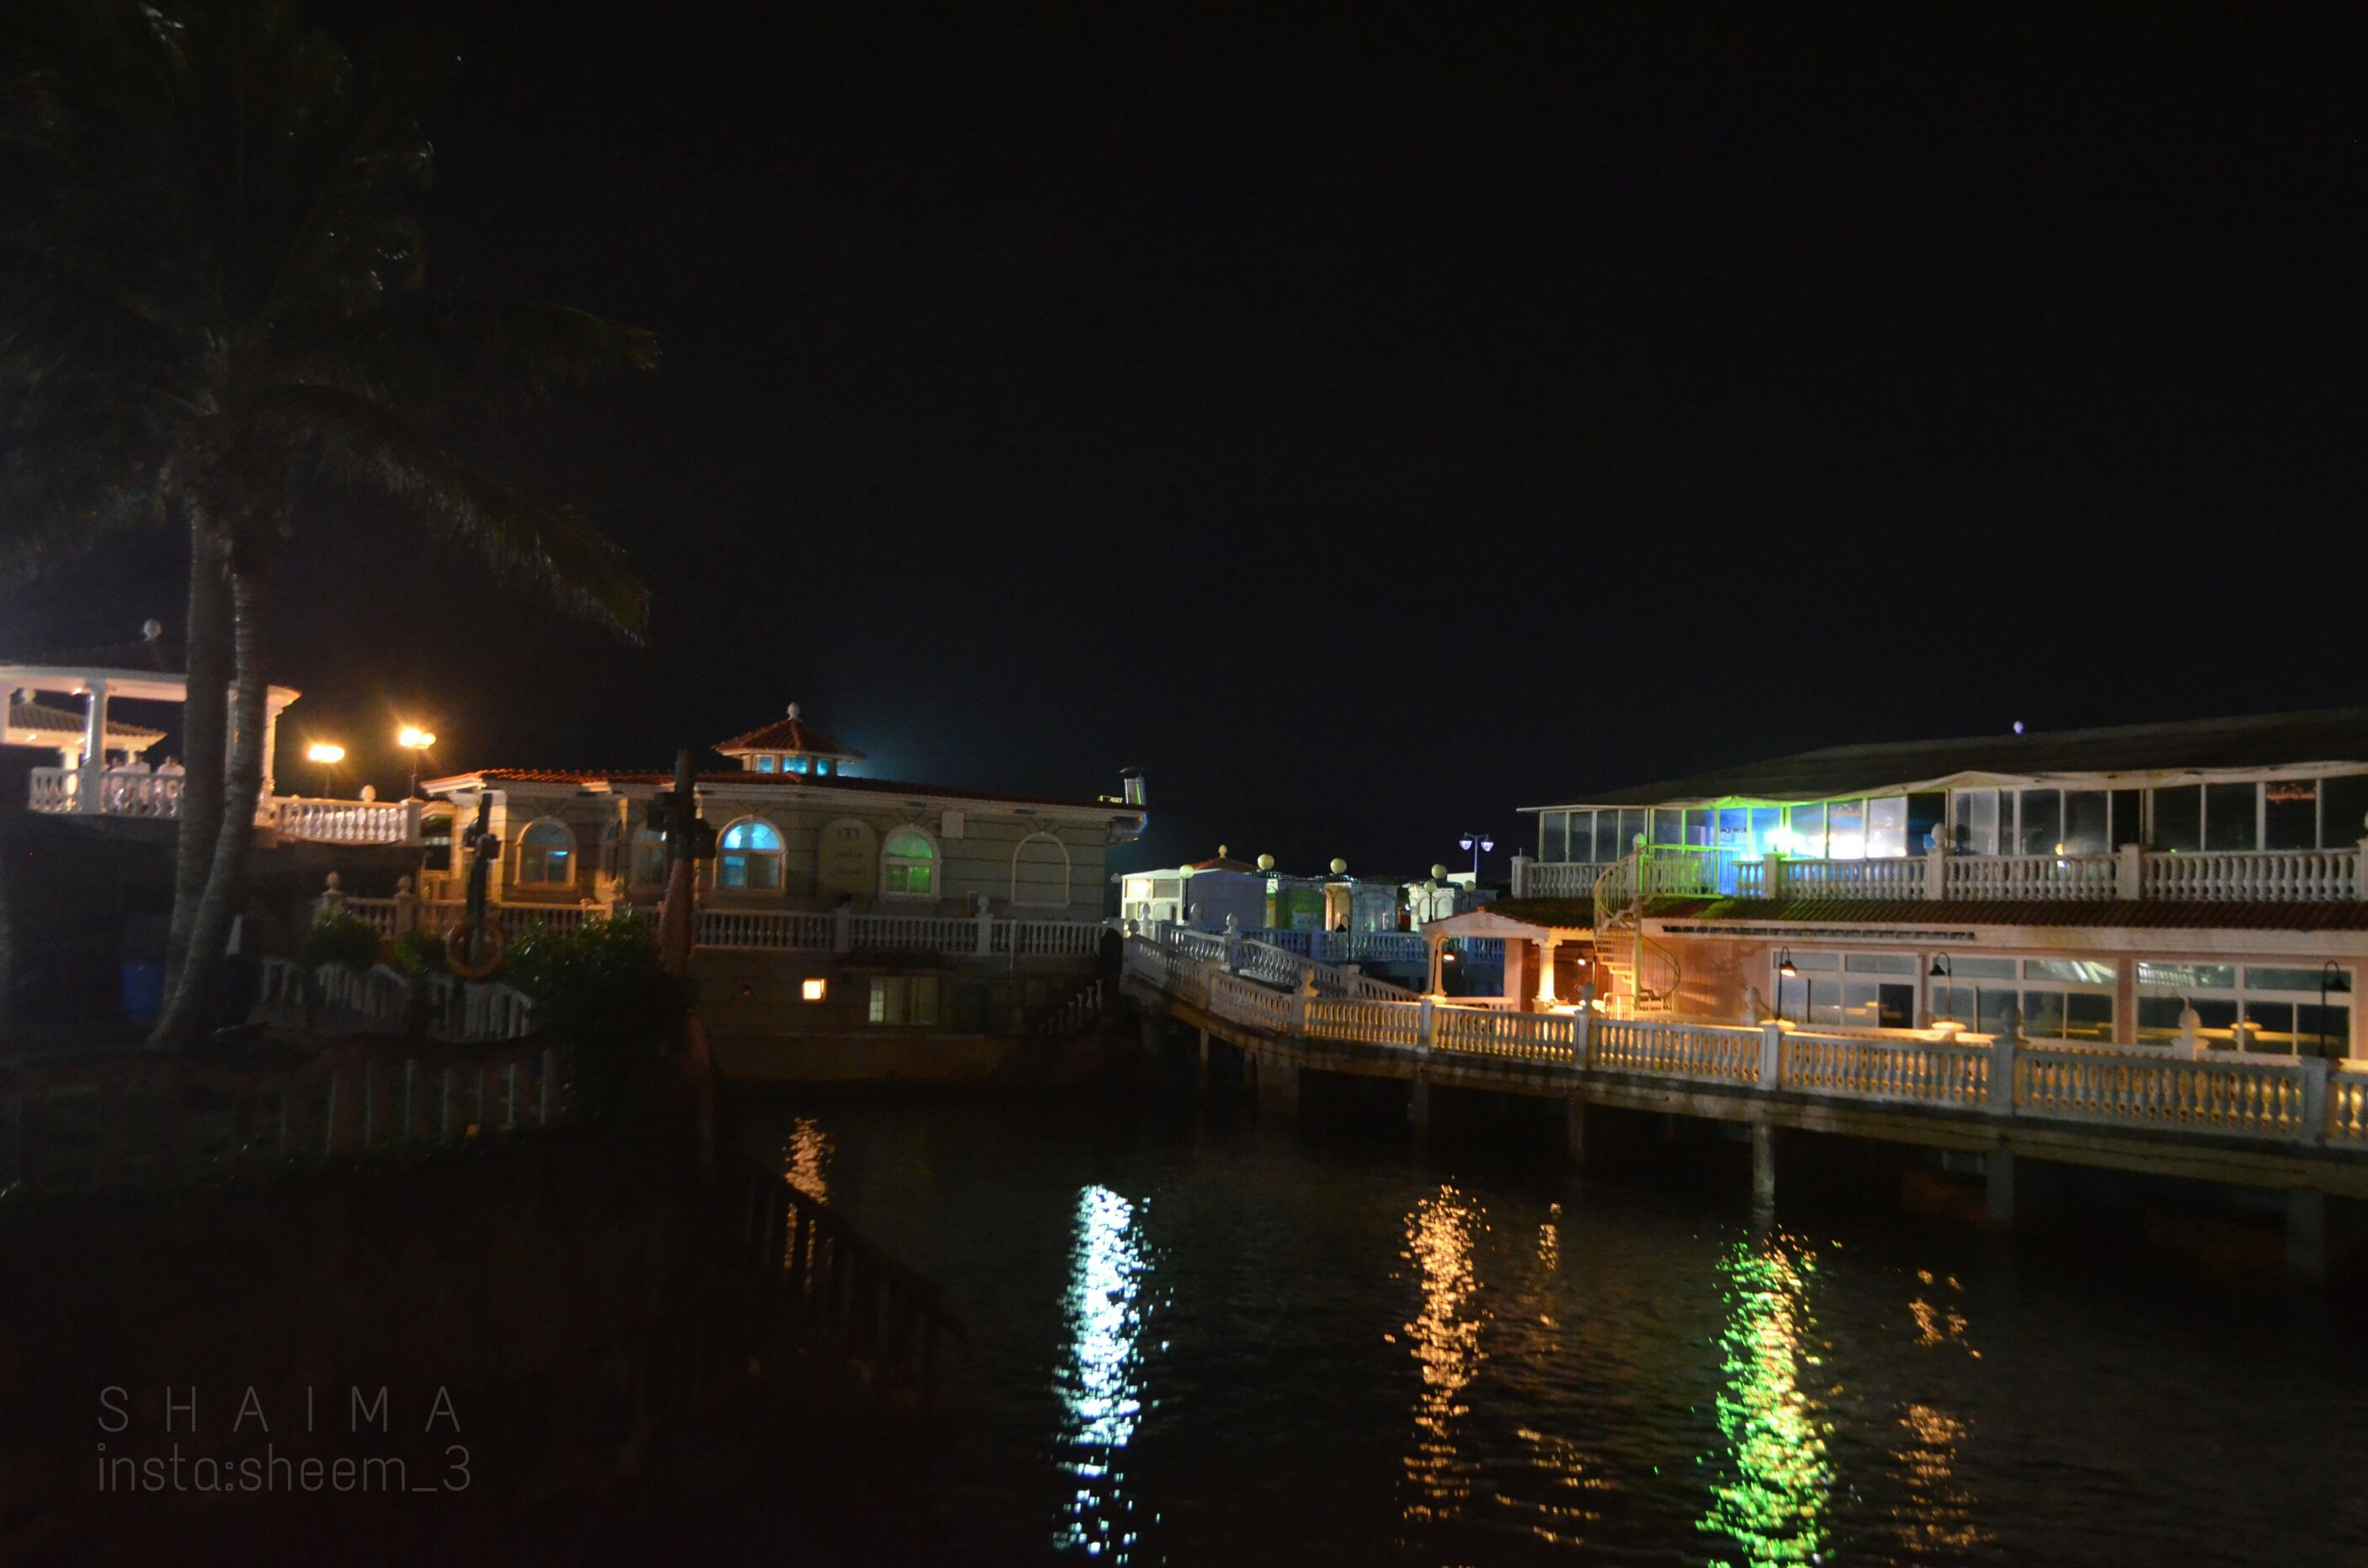 water, night, building exterior, illuminated, built structure, architecture, reflection, waterfront, river, canal, clear sky, transportation, city, copy space, outdoors, street light, mode of transport, no people, house, sky